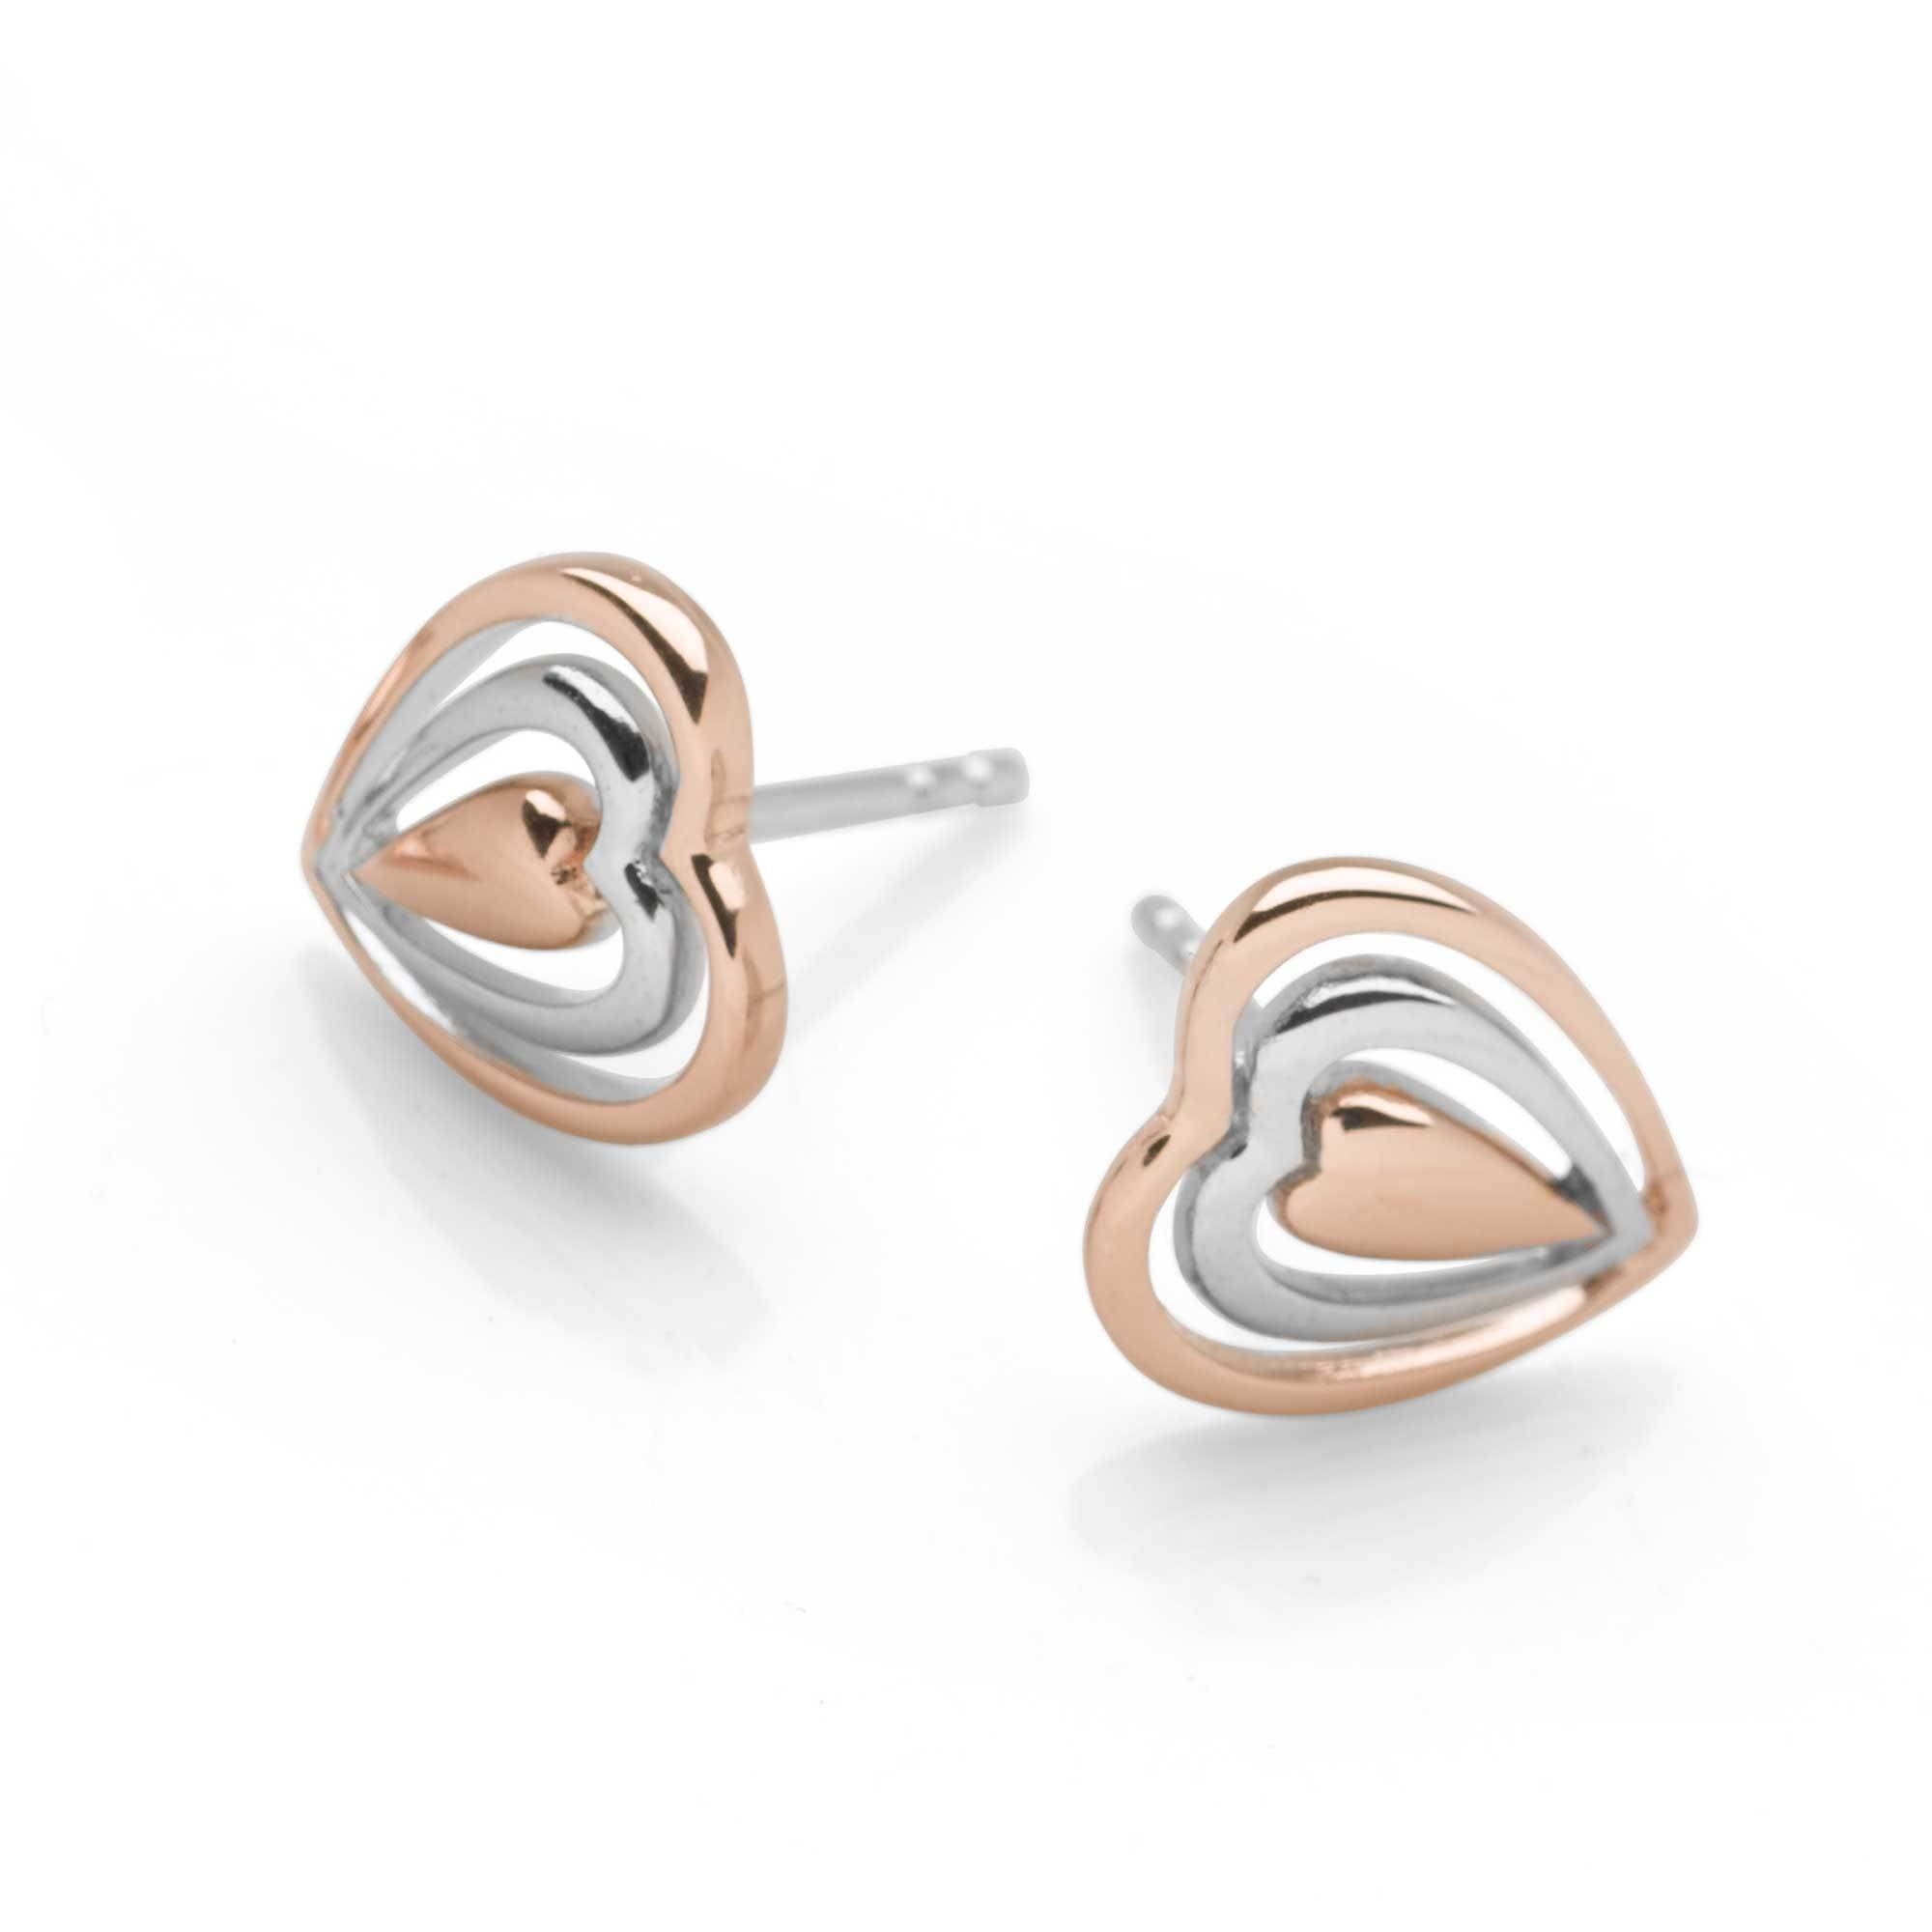 Triple the Love Heart Studs with 925 sterling silver & pink rhodium plating (E45031)